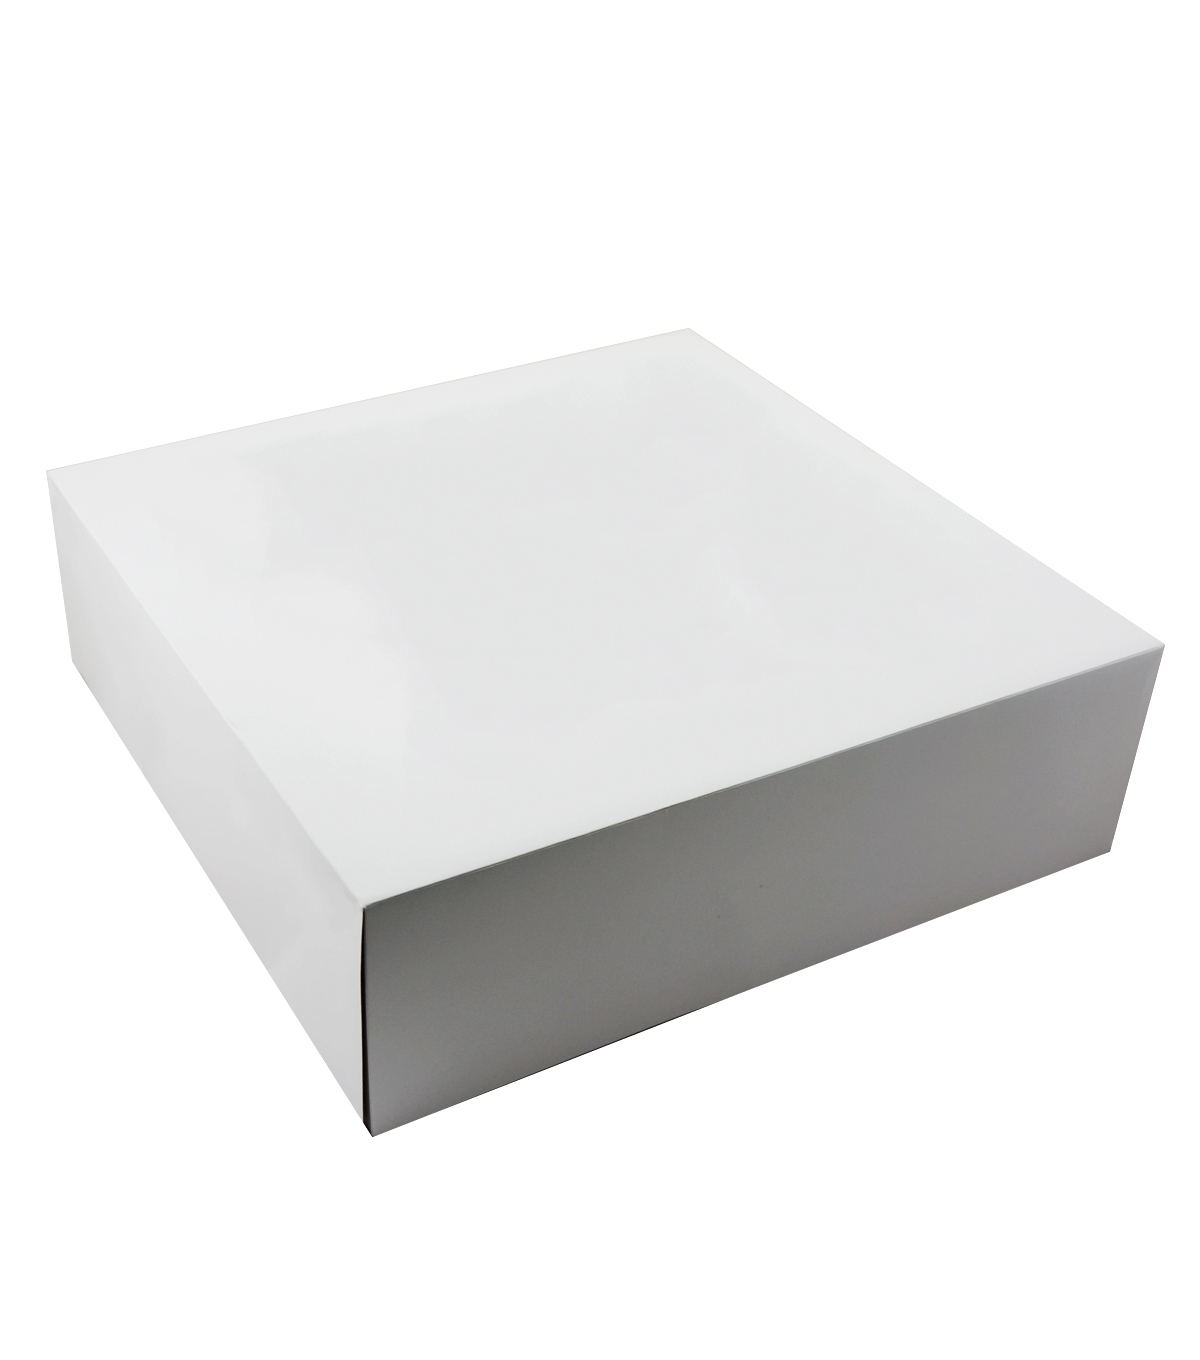 Cake Box Corrugate 16.25x16.25x5 2Ct